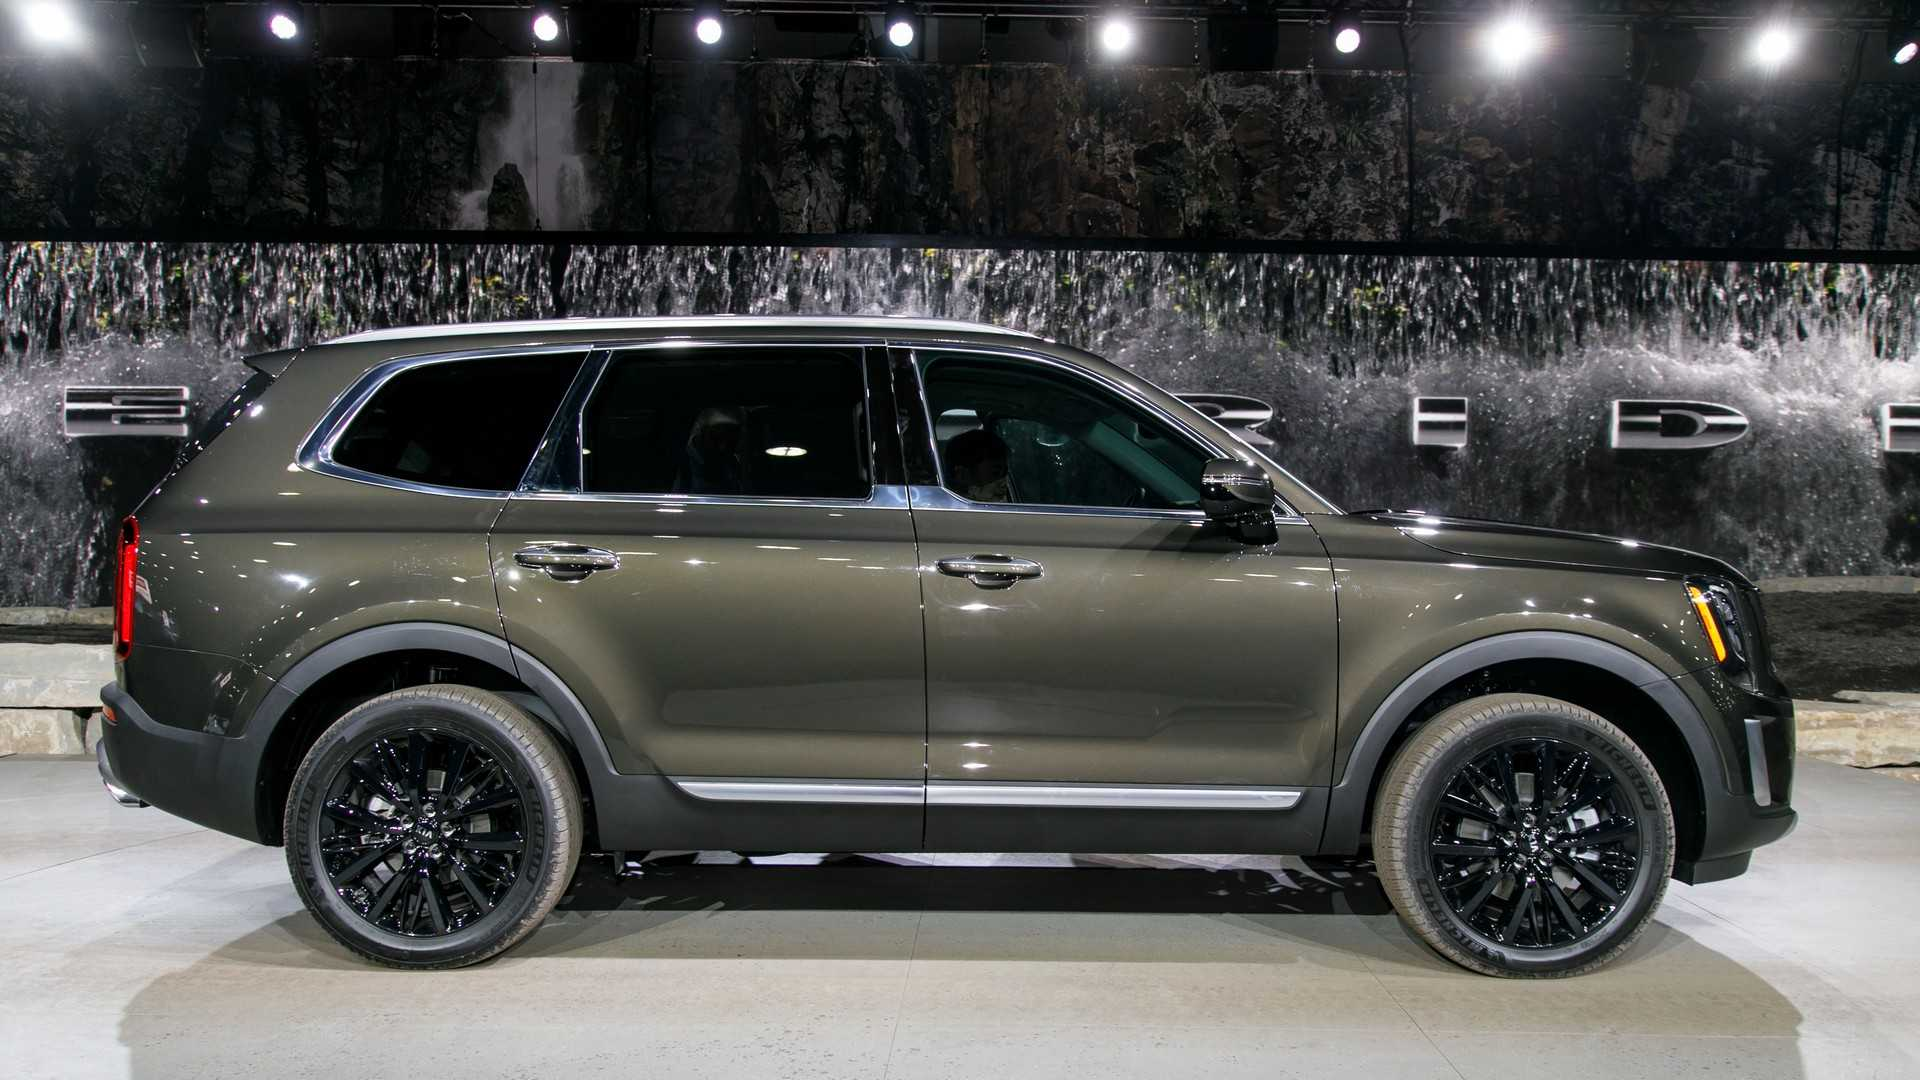 30 The Best 2020 Kia Telluride Release Date Engine